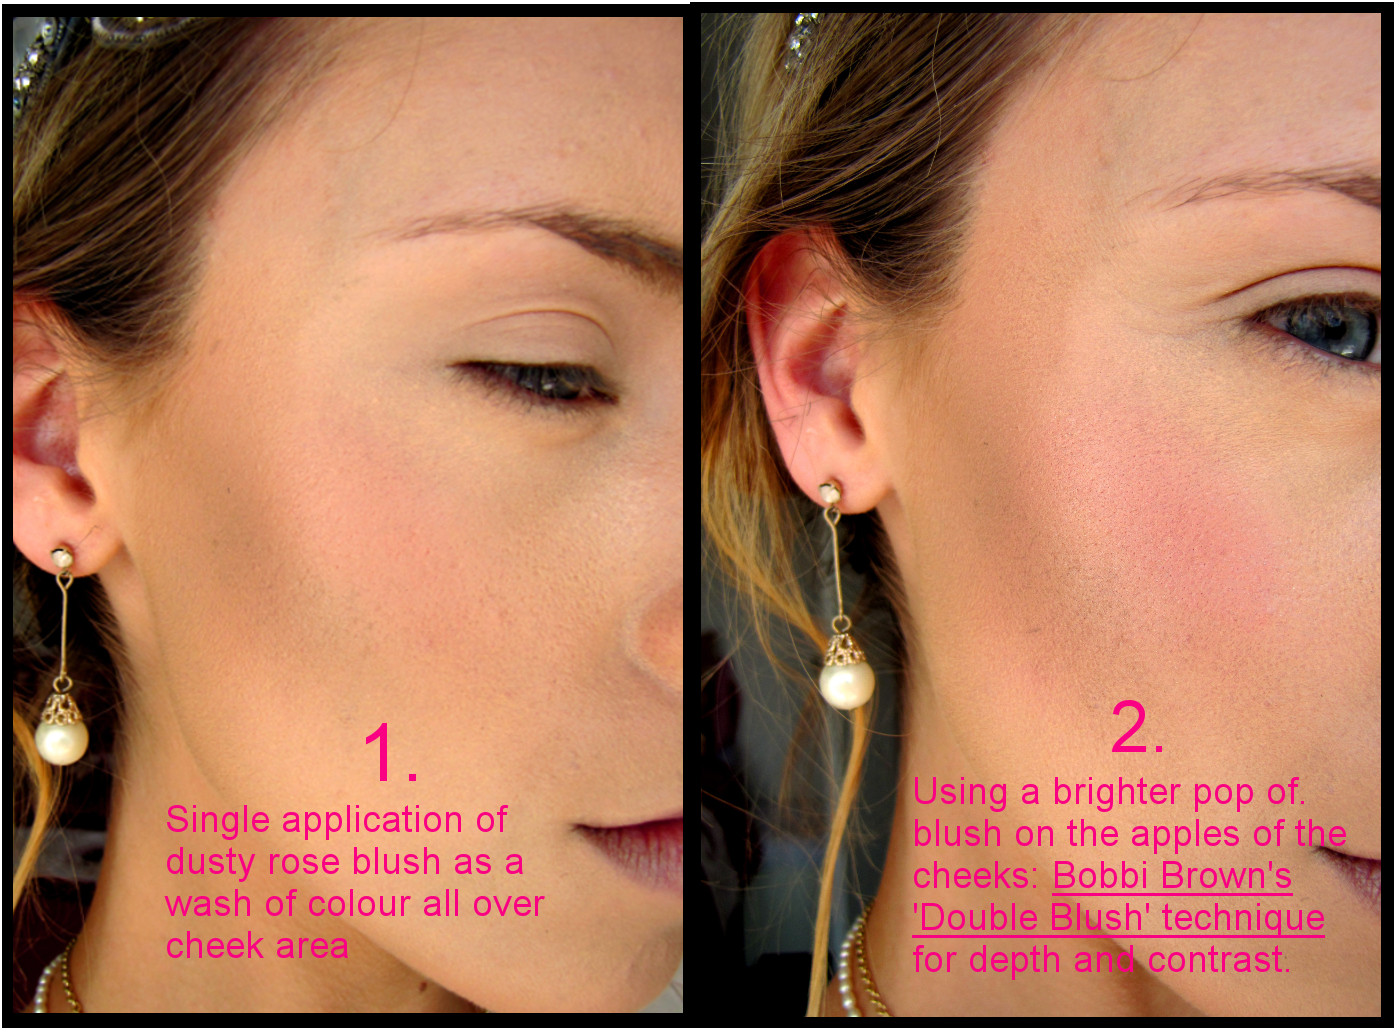 How To Make Your Own Wedding Makeup : Make-Up Artists Advice: Doing Your Own Wedding Day Make ...